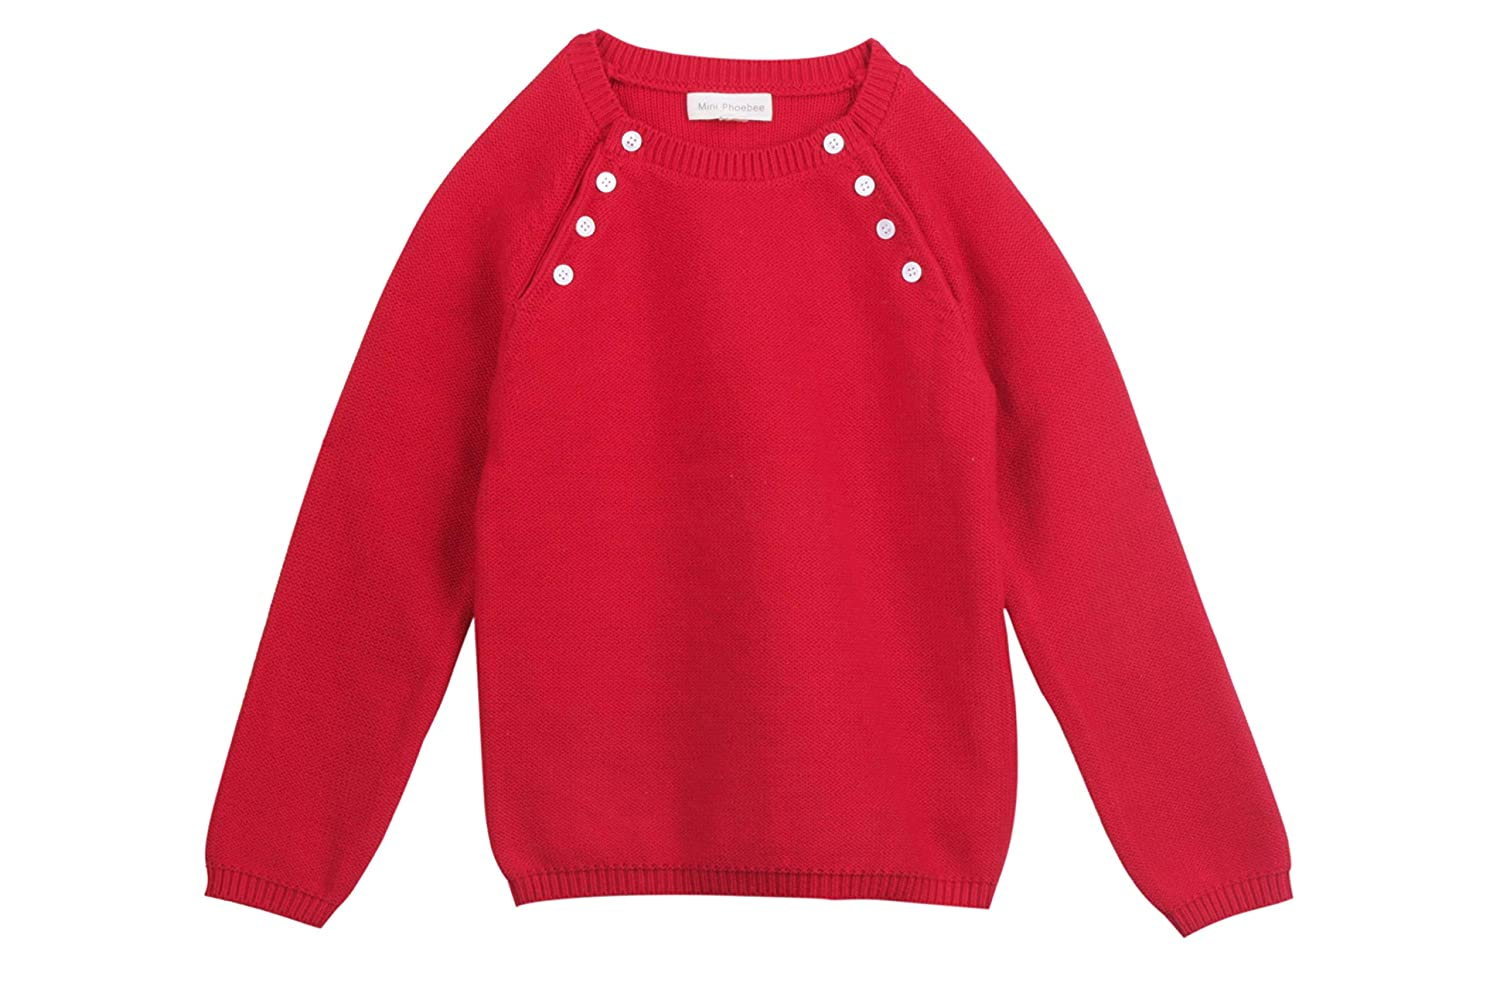 Mini Phoebee Little Girls' Long Sleeve Crew Neck Pullover Sweater